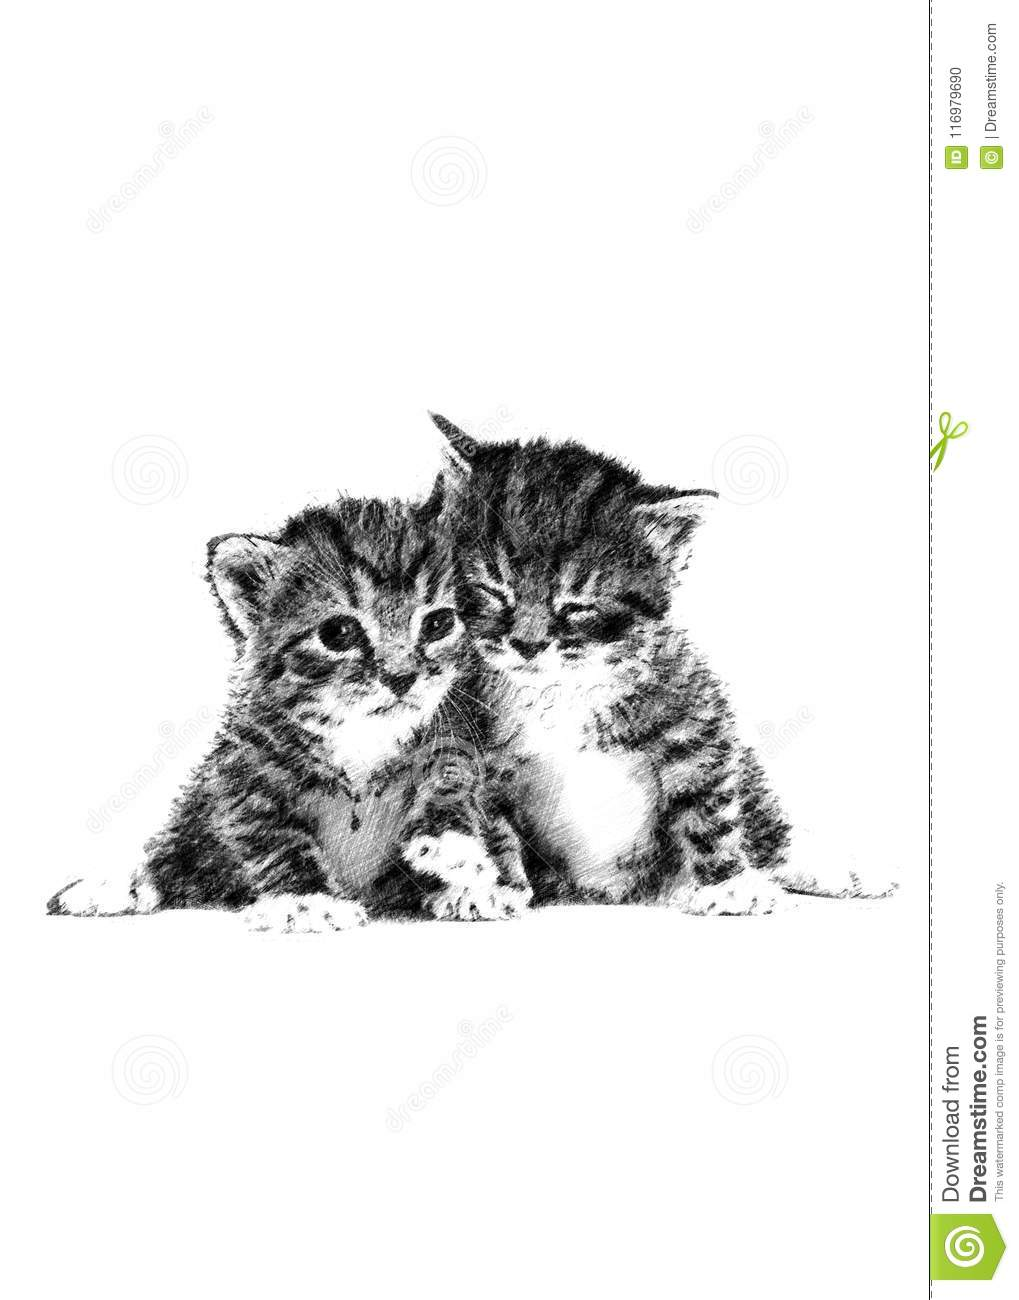 A cute kittens handrawn pencil art sketch illustration on white background